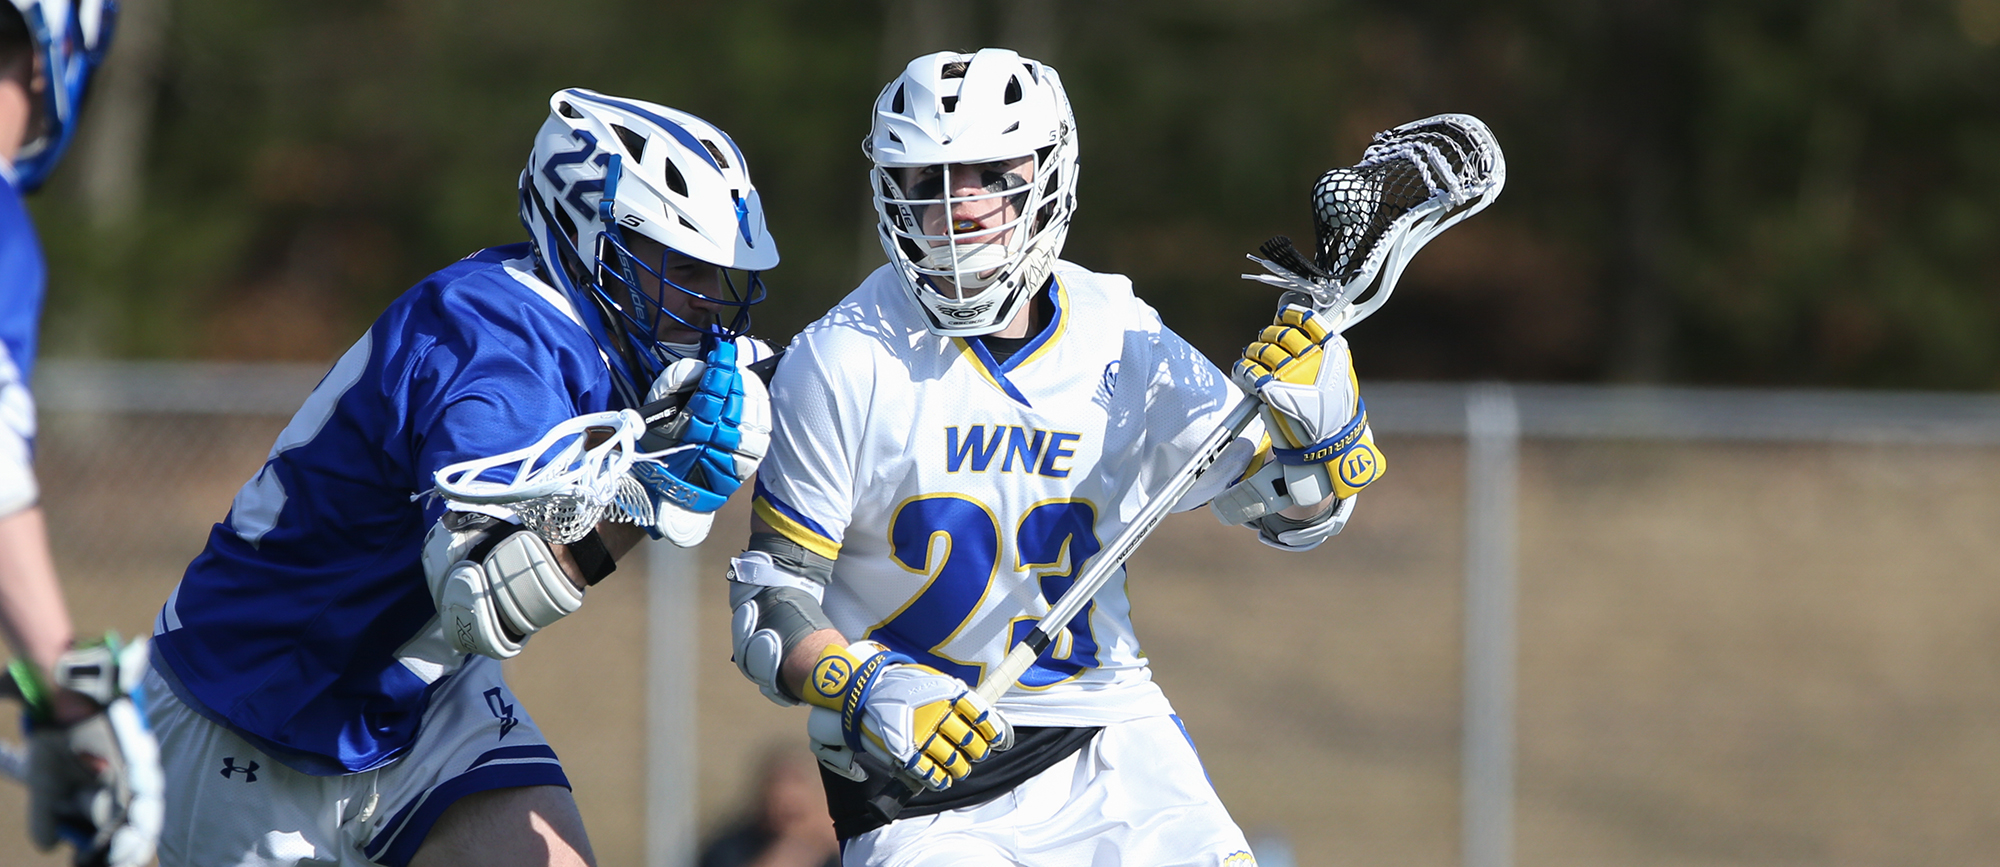 Sophomore Jared Newall scored a pair of goals in Western New England's 10-7 win over Endicott on Saturday. (Photo by Chris Marion)